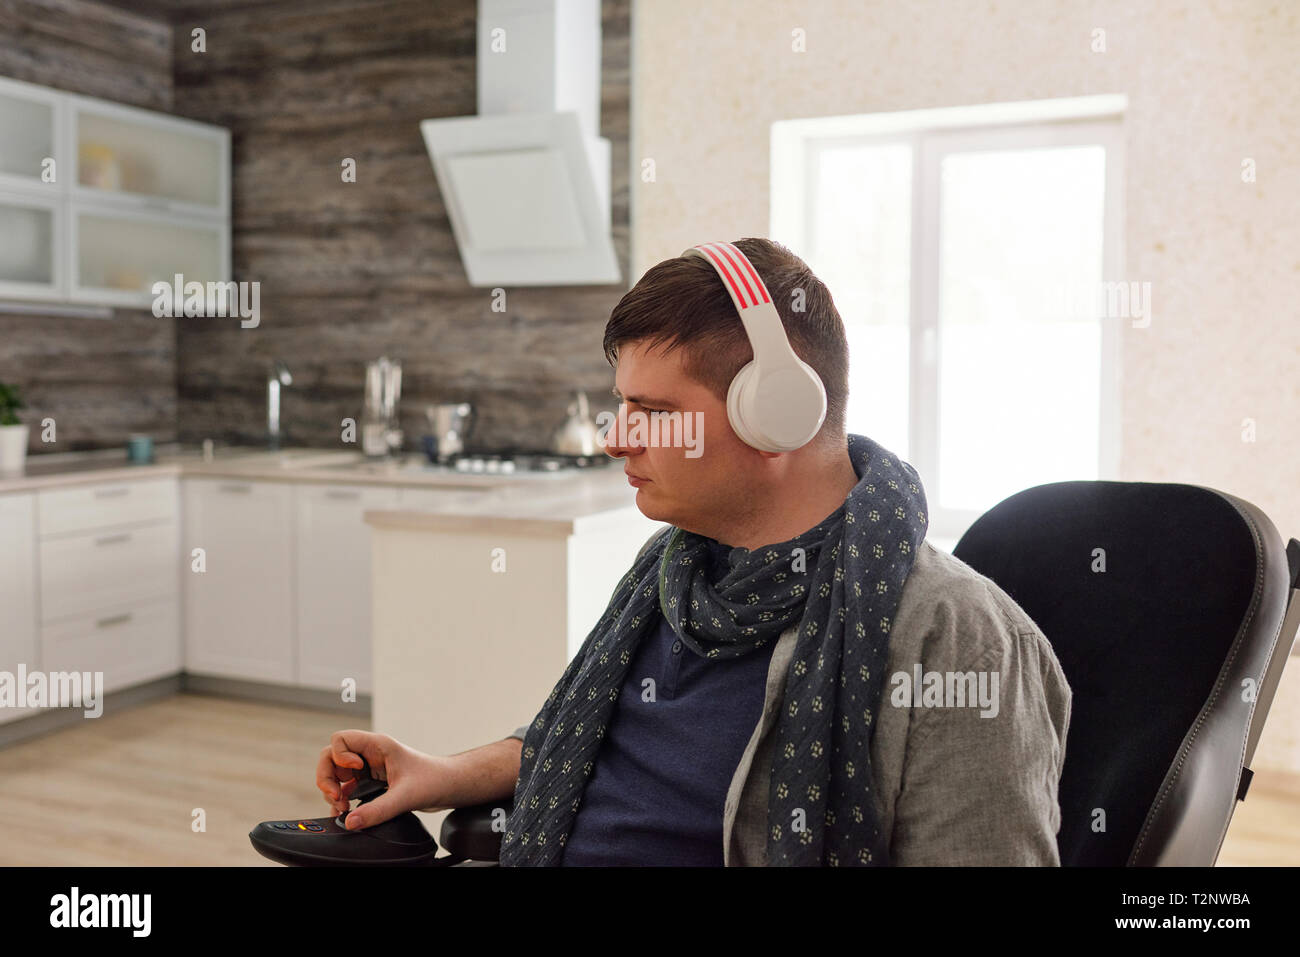 Physically impaired man listening to music with headphones at home - Stock Image